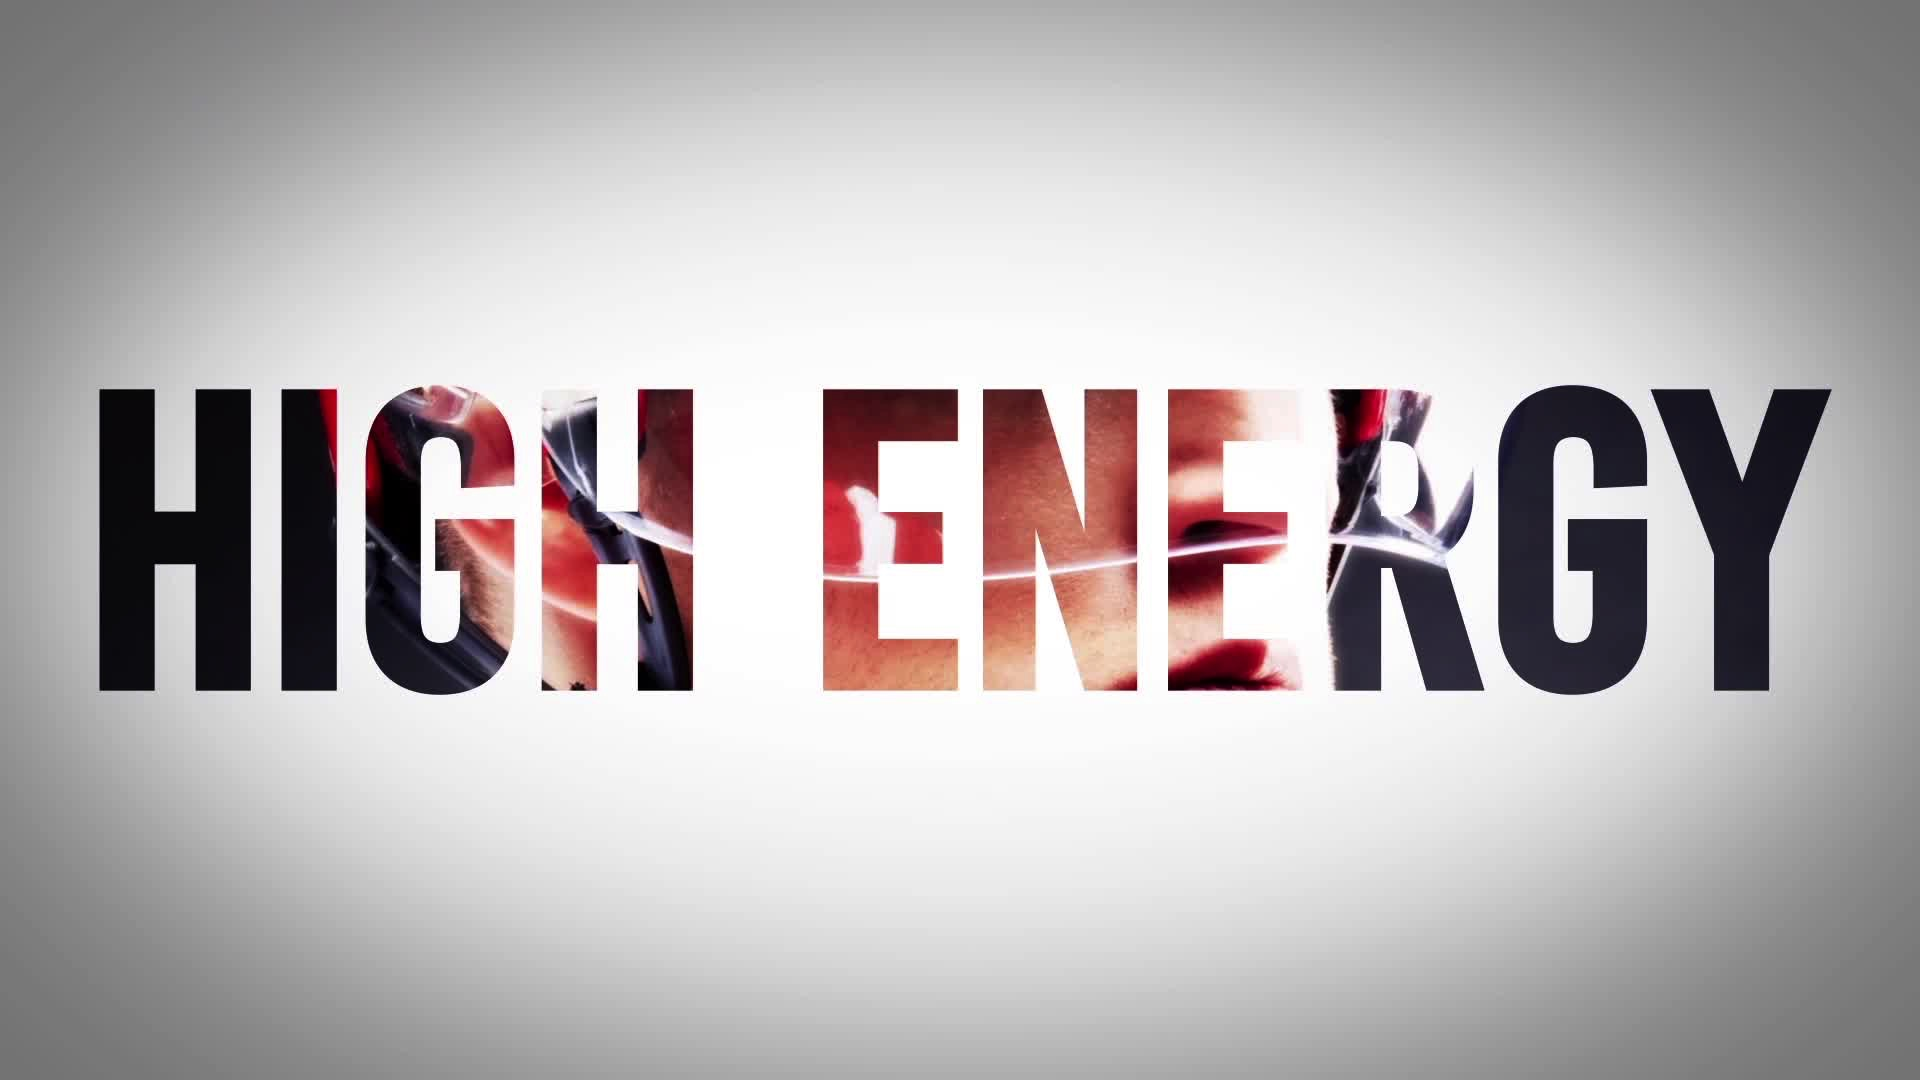 Momentum kinetic title sequence after effects template for After effects titles templates